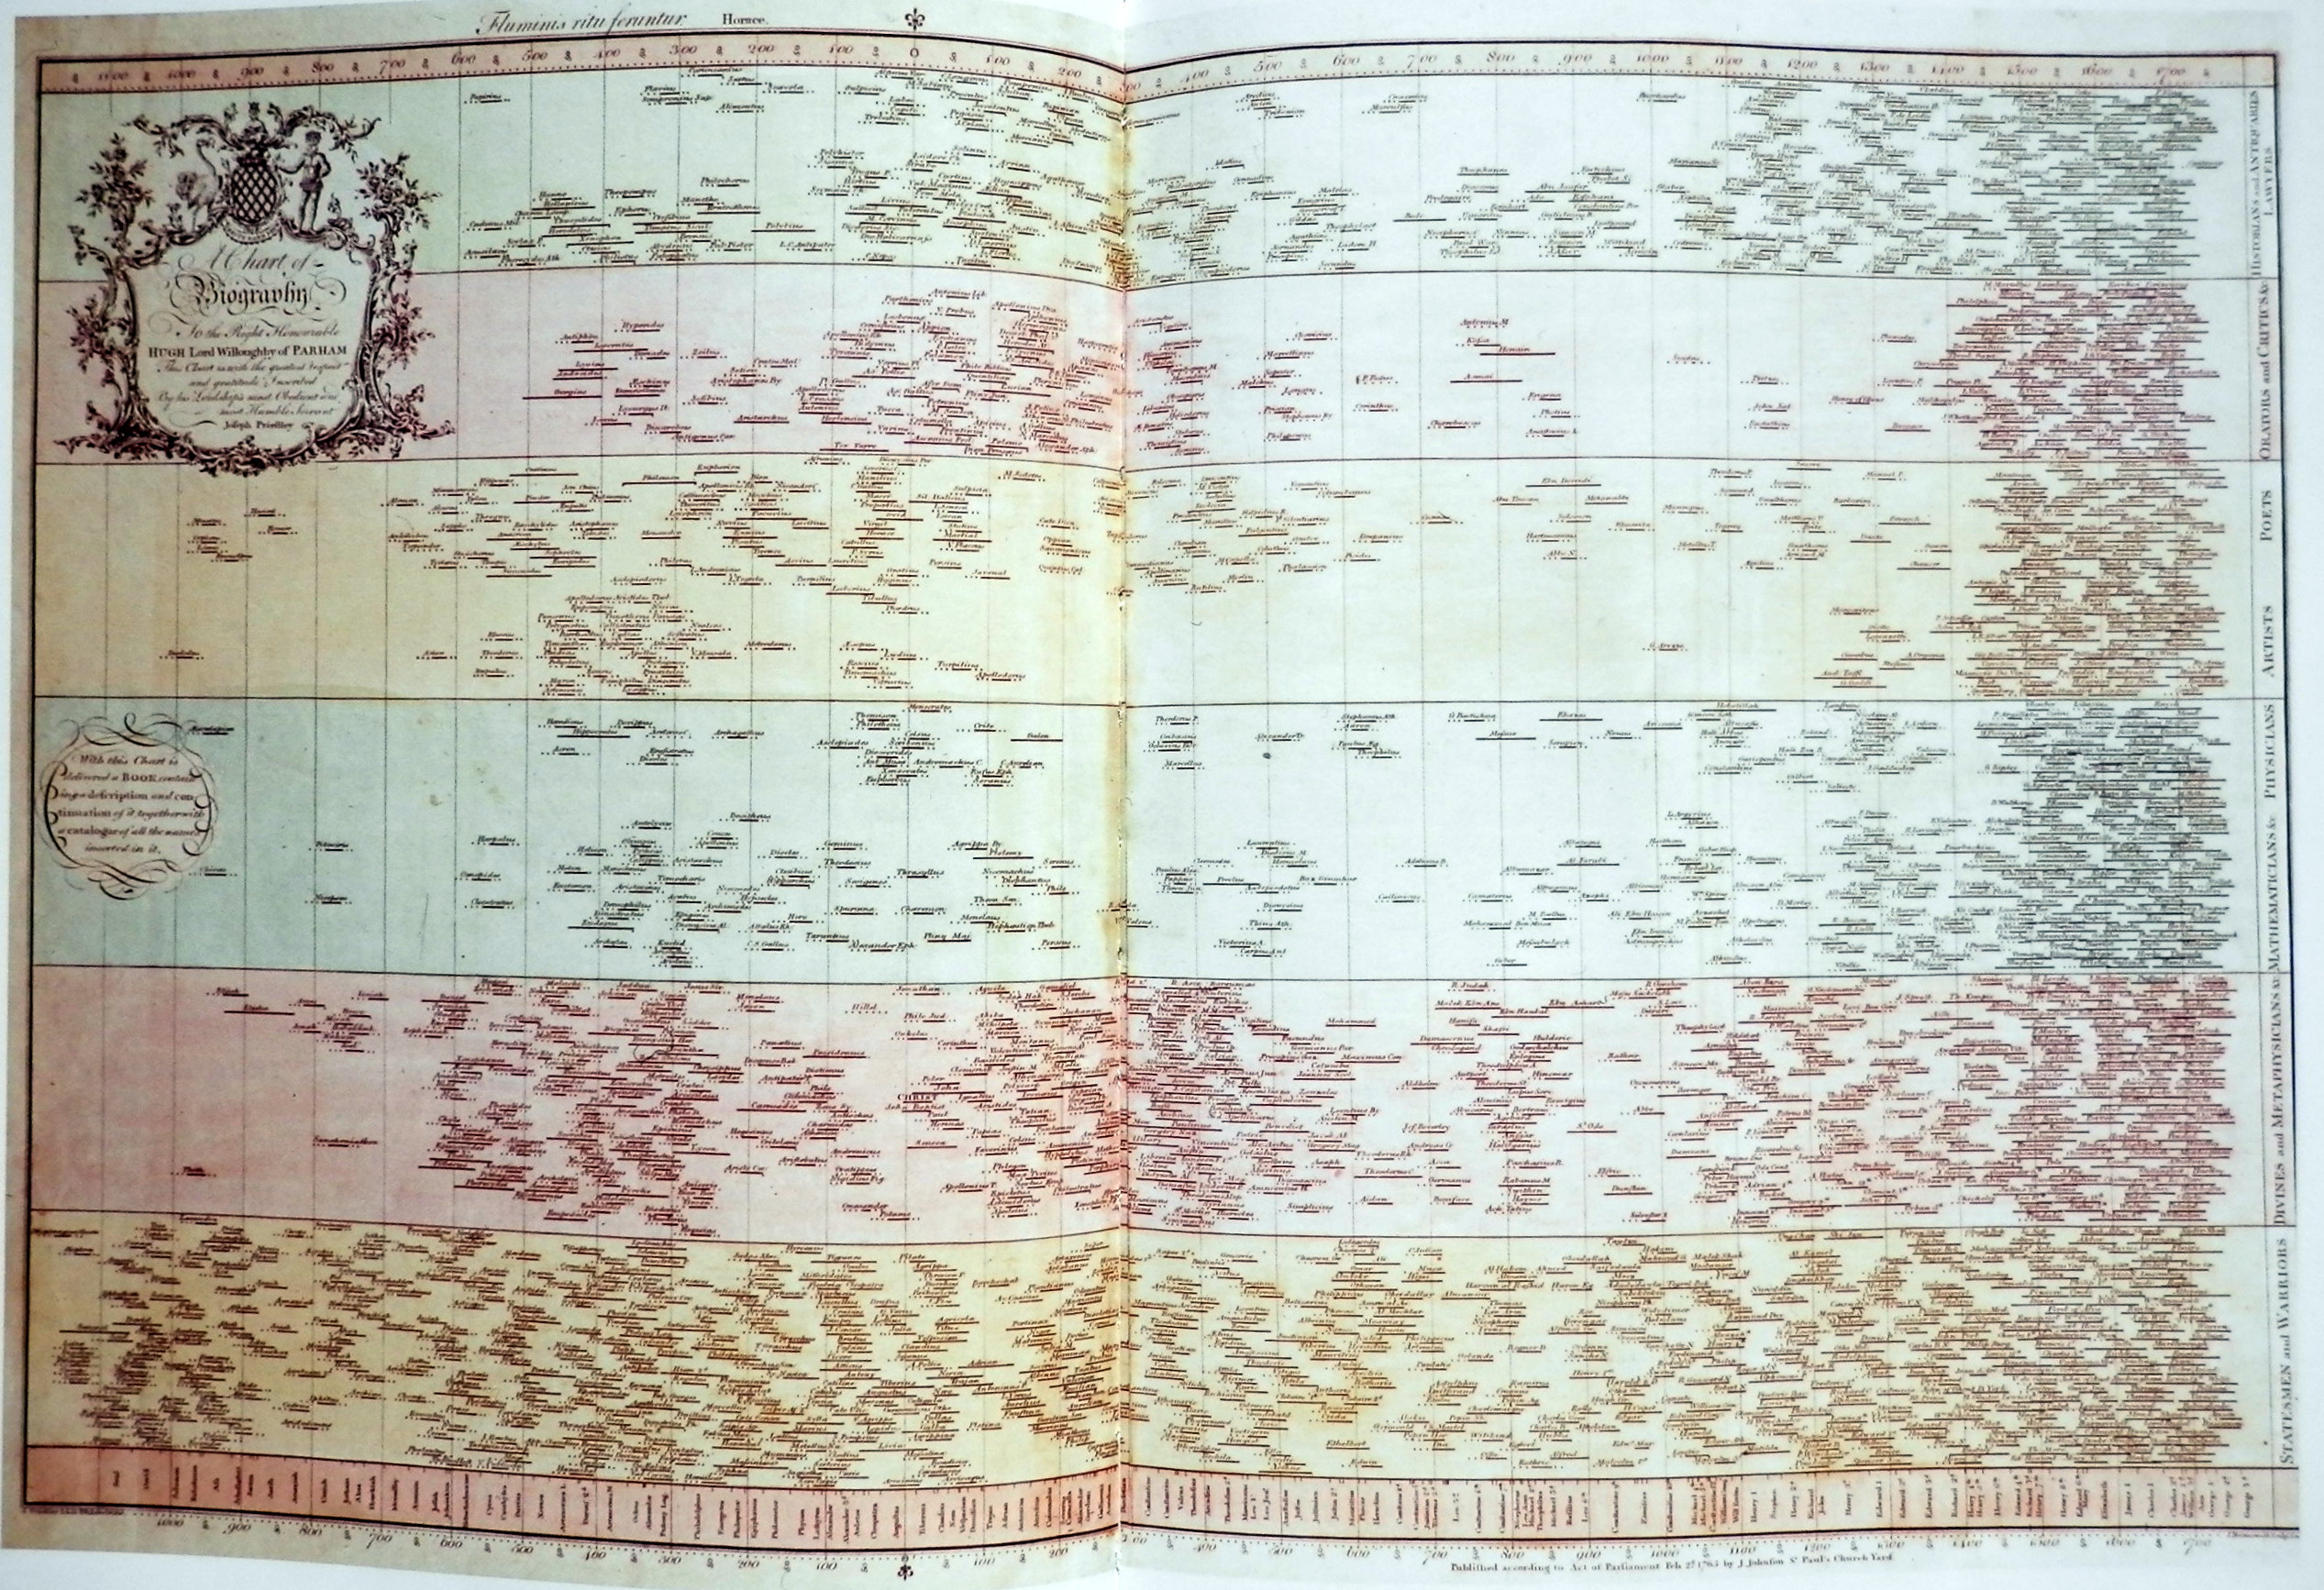 Joseph Priestley, A Chart of Biography (1765)